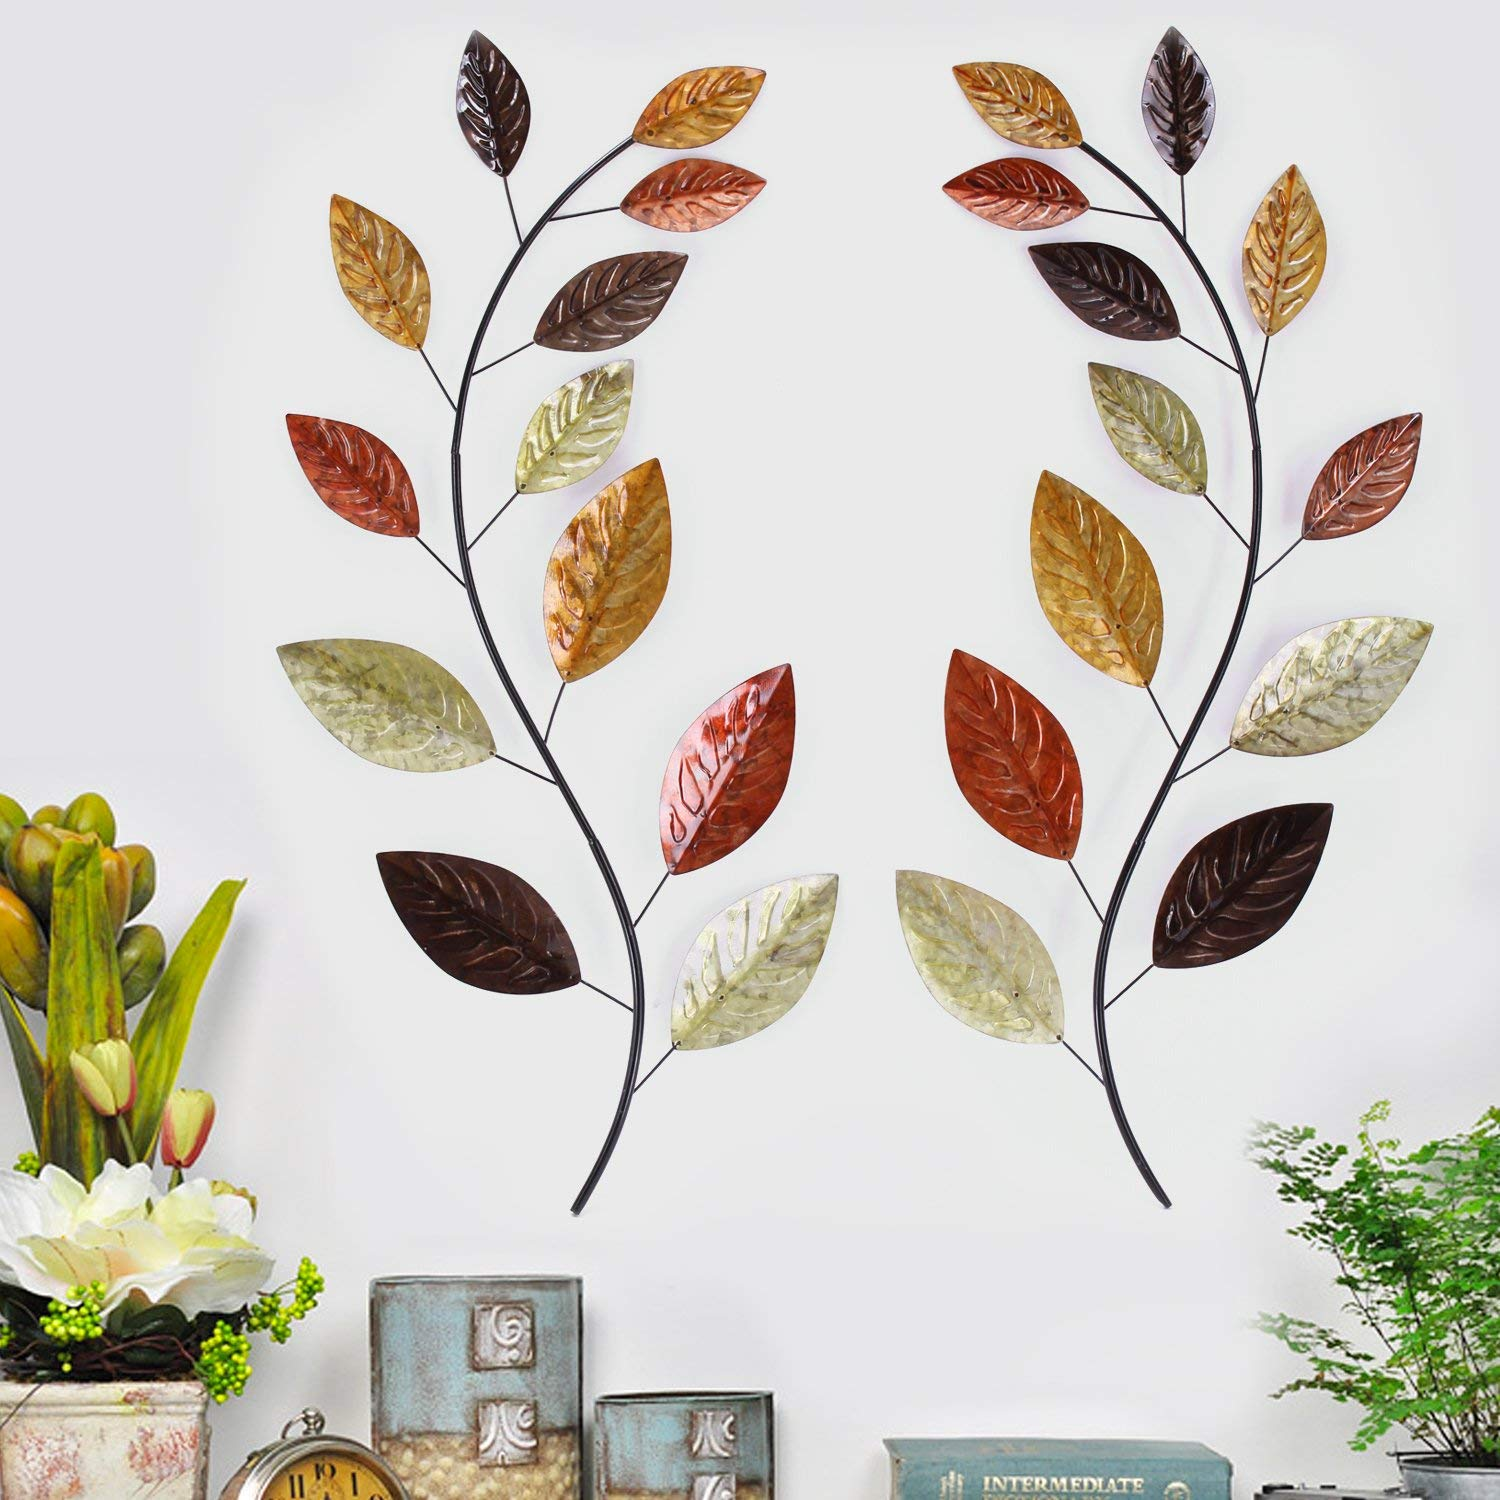 Asense Tree Leaf Metal Wall Art Sculptures Home Decor Life Decoration Set of 2 by Asense